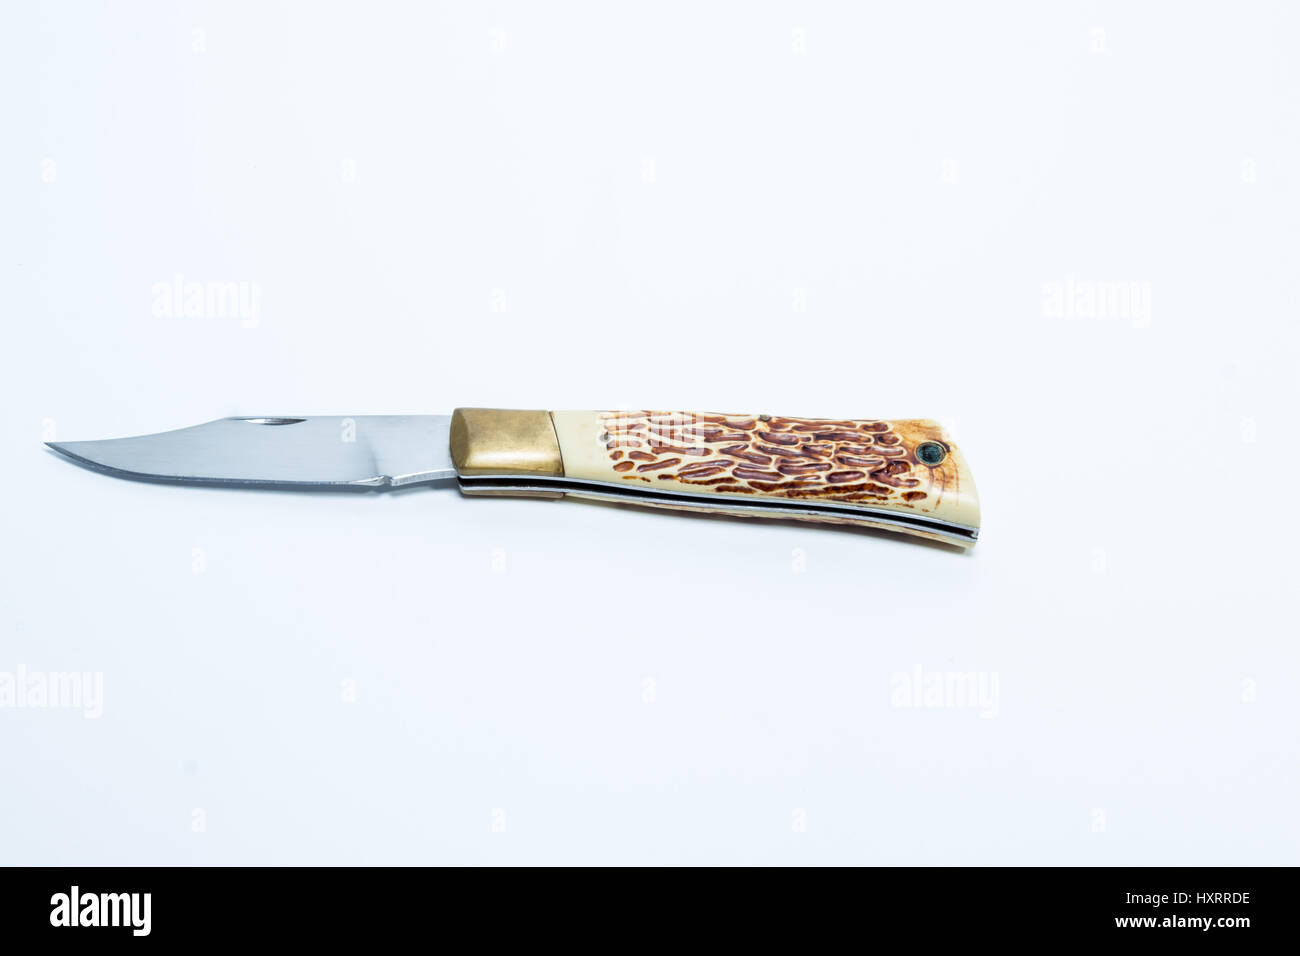 Vintage pocketknife with horn handle and brass guard - horizontal and white background - Stock Image